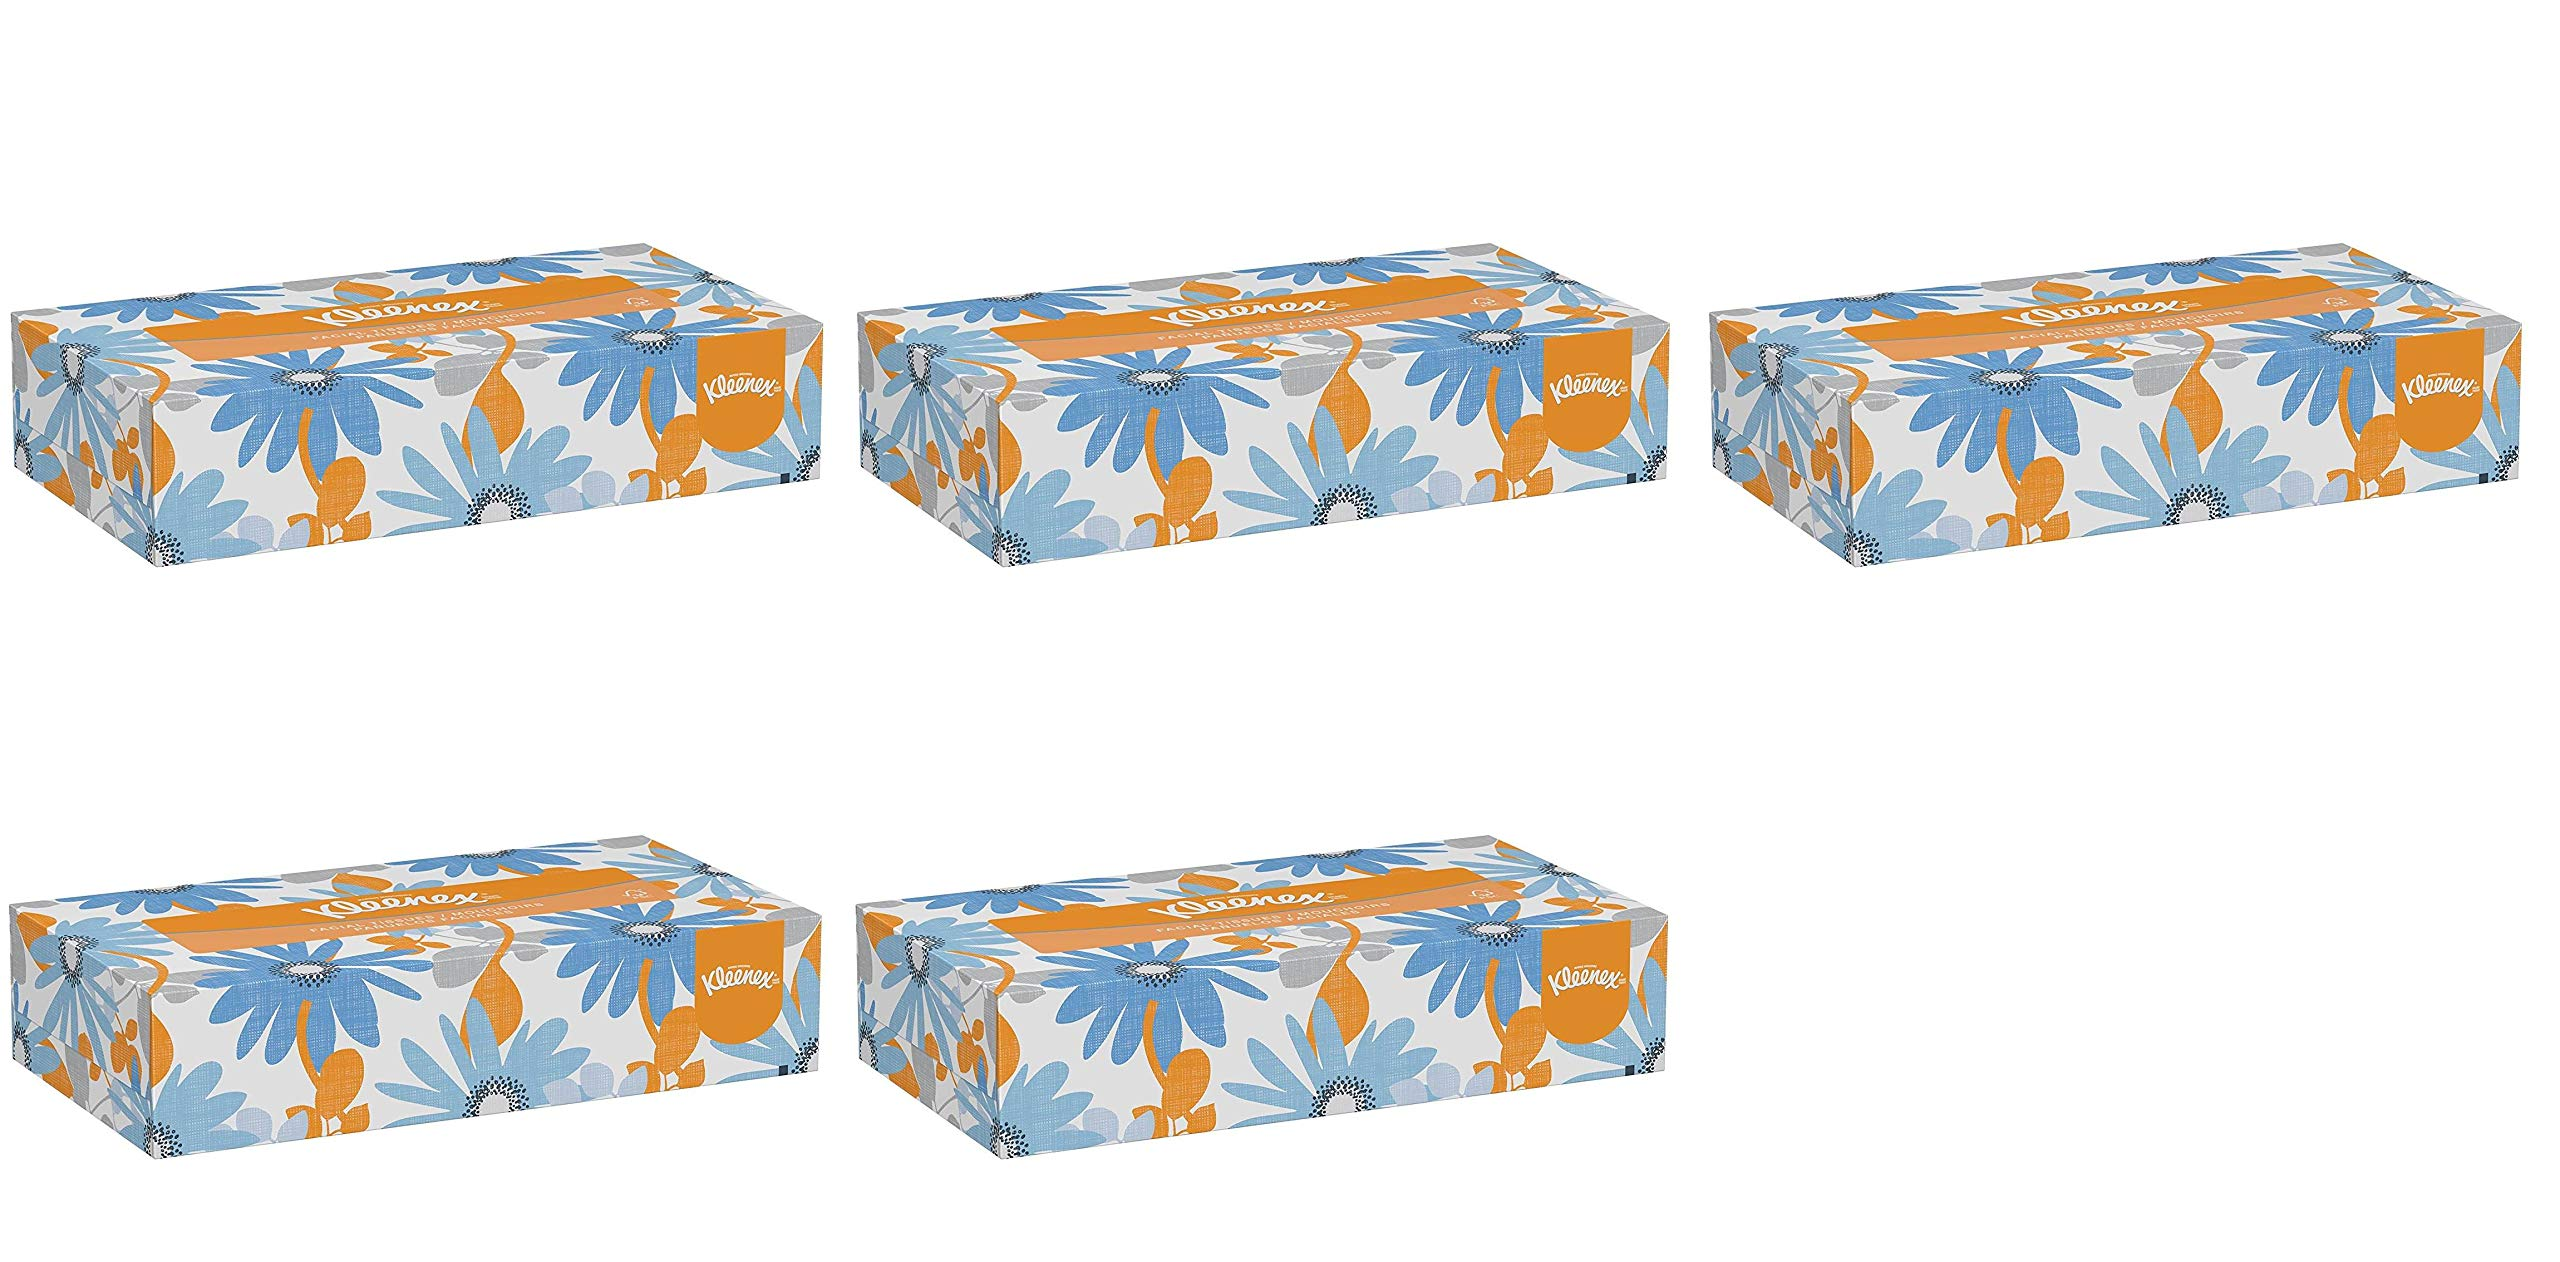 Kleenex Professional Facial Tissue for Business (21606) Flat Tissue Boxes, 5 Pack (1 case of 48)